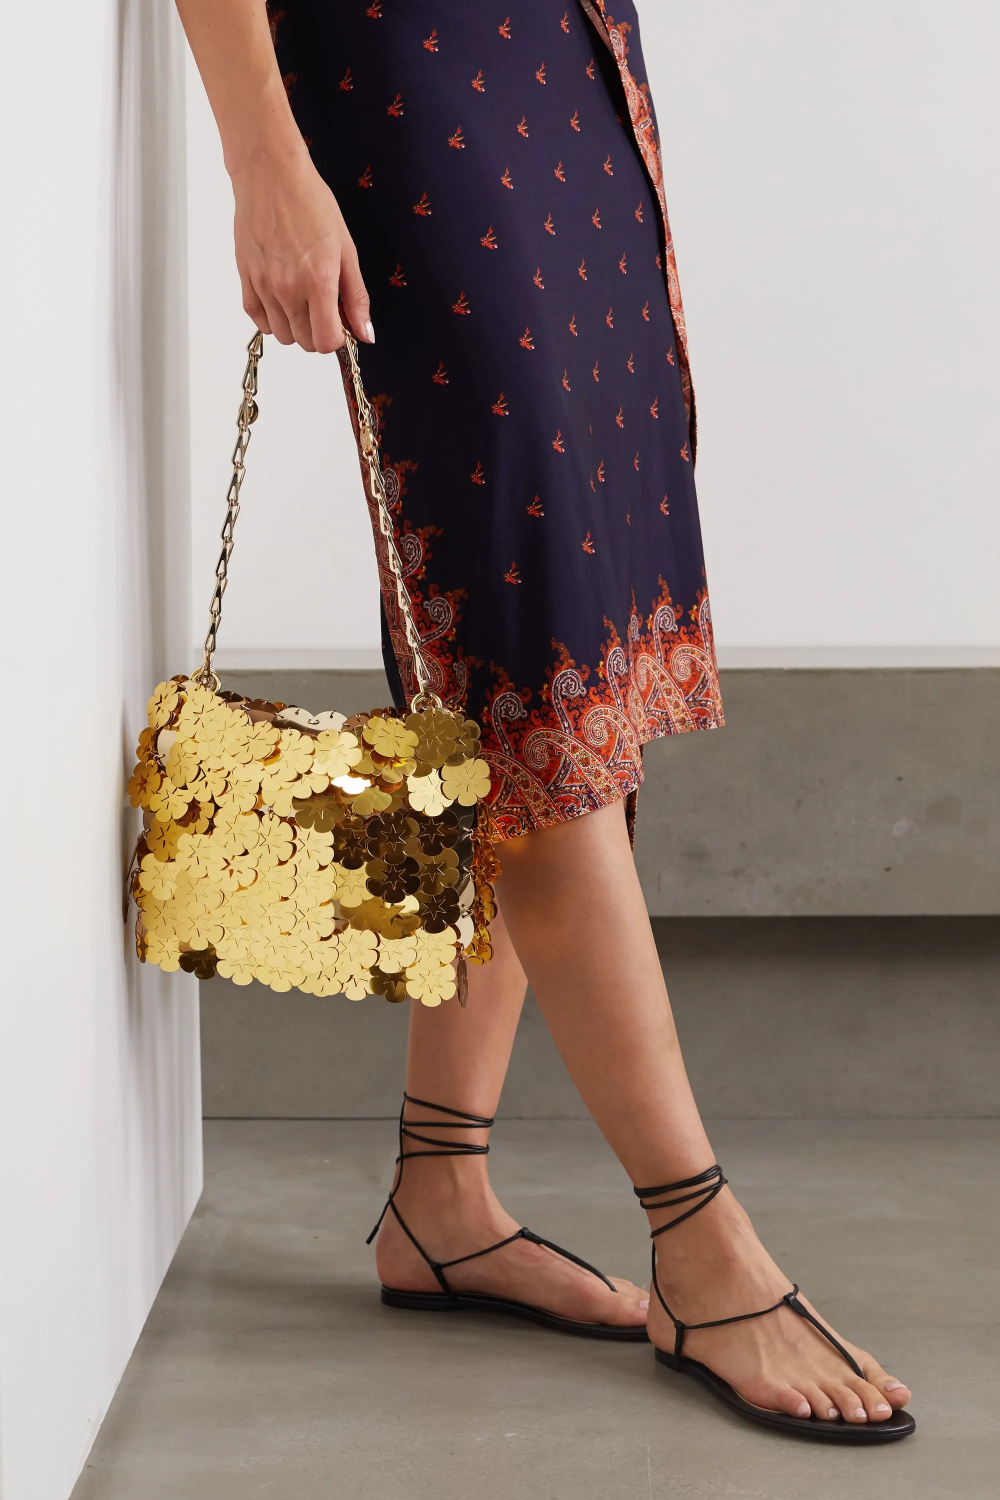 Shopping for a New Purse: Boost your wardrobe with a stylish leopard print handbag in proportion to your body.